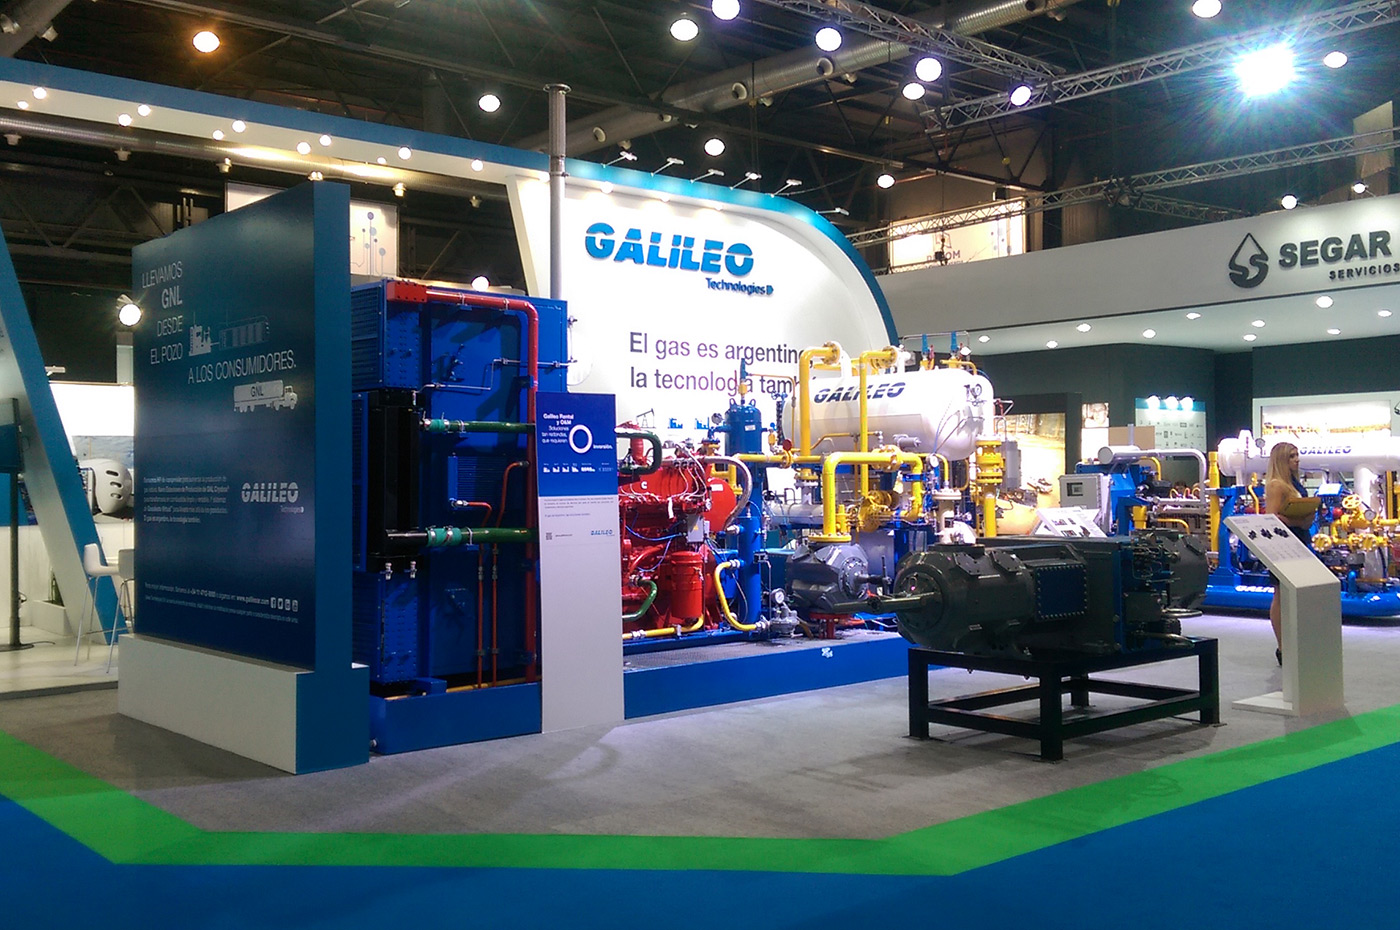 At their stand, Galileo Technologies exhibited their line of plug-and-play compressors for Wellhead, Gas-lift and Gathering applications.